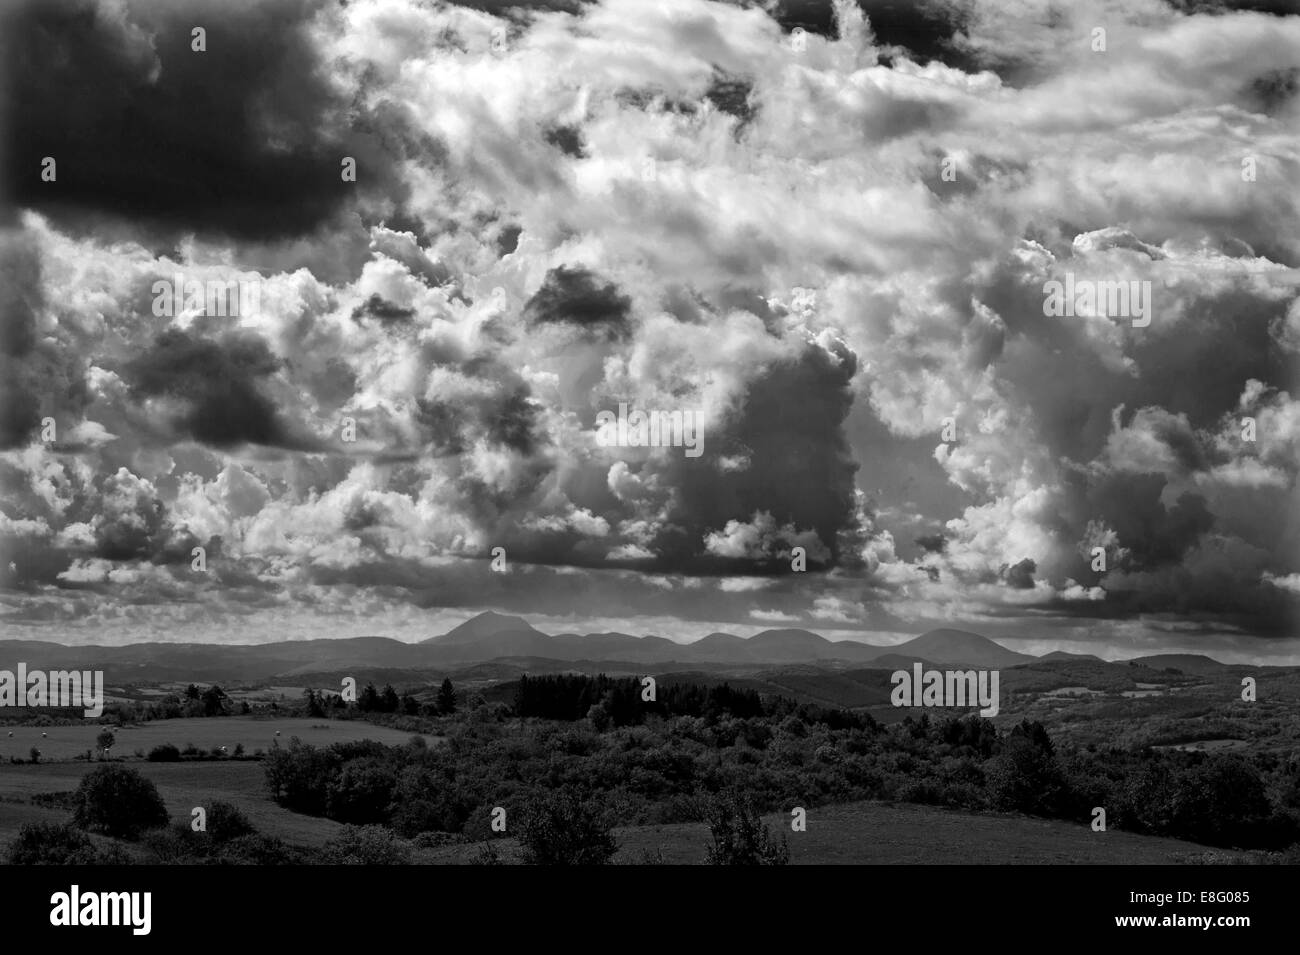 France. Puy de Dome range in the Massif Central in the Auvergne, central France. September 2014 - Stock Image